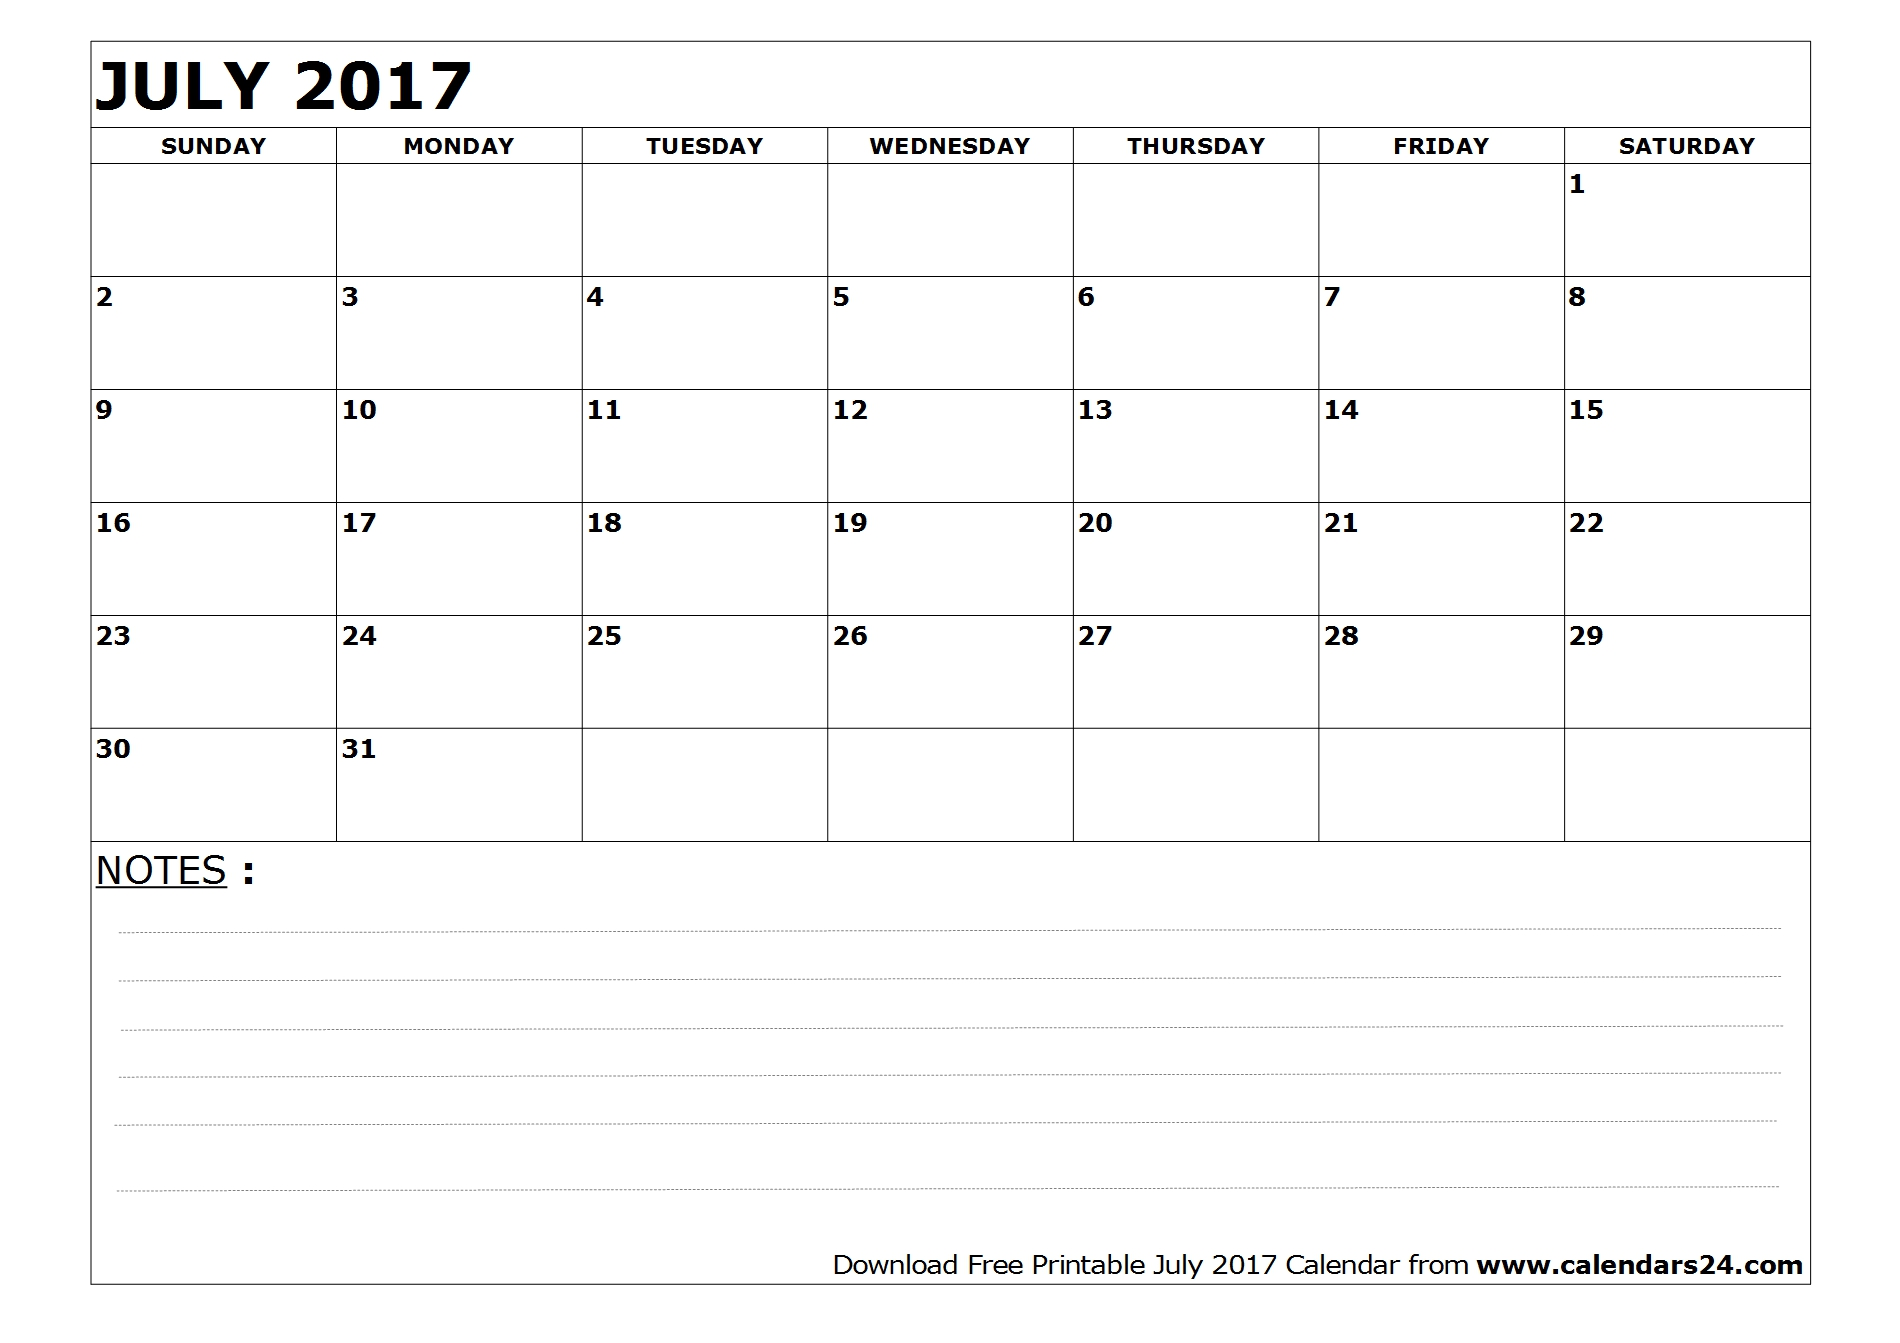 Blank July 2017 Calendar with Notes